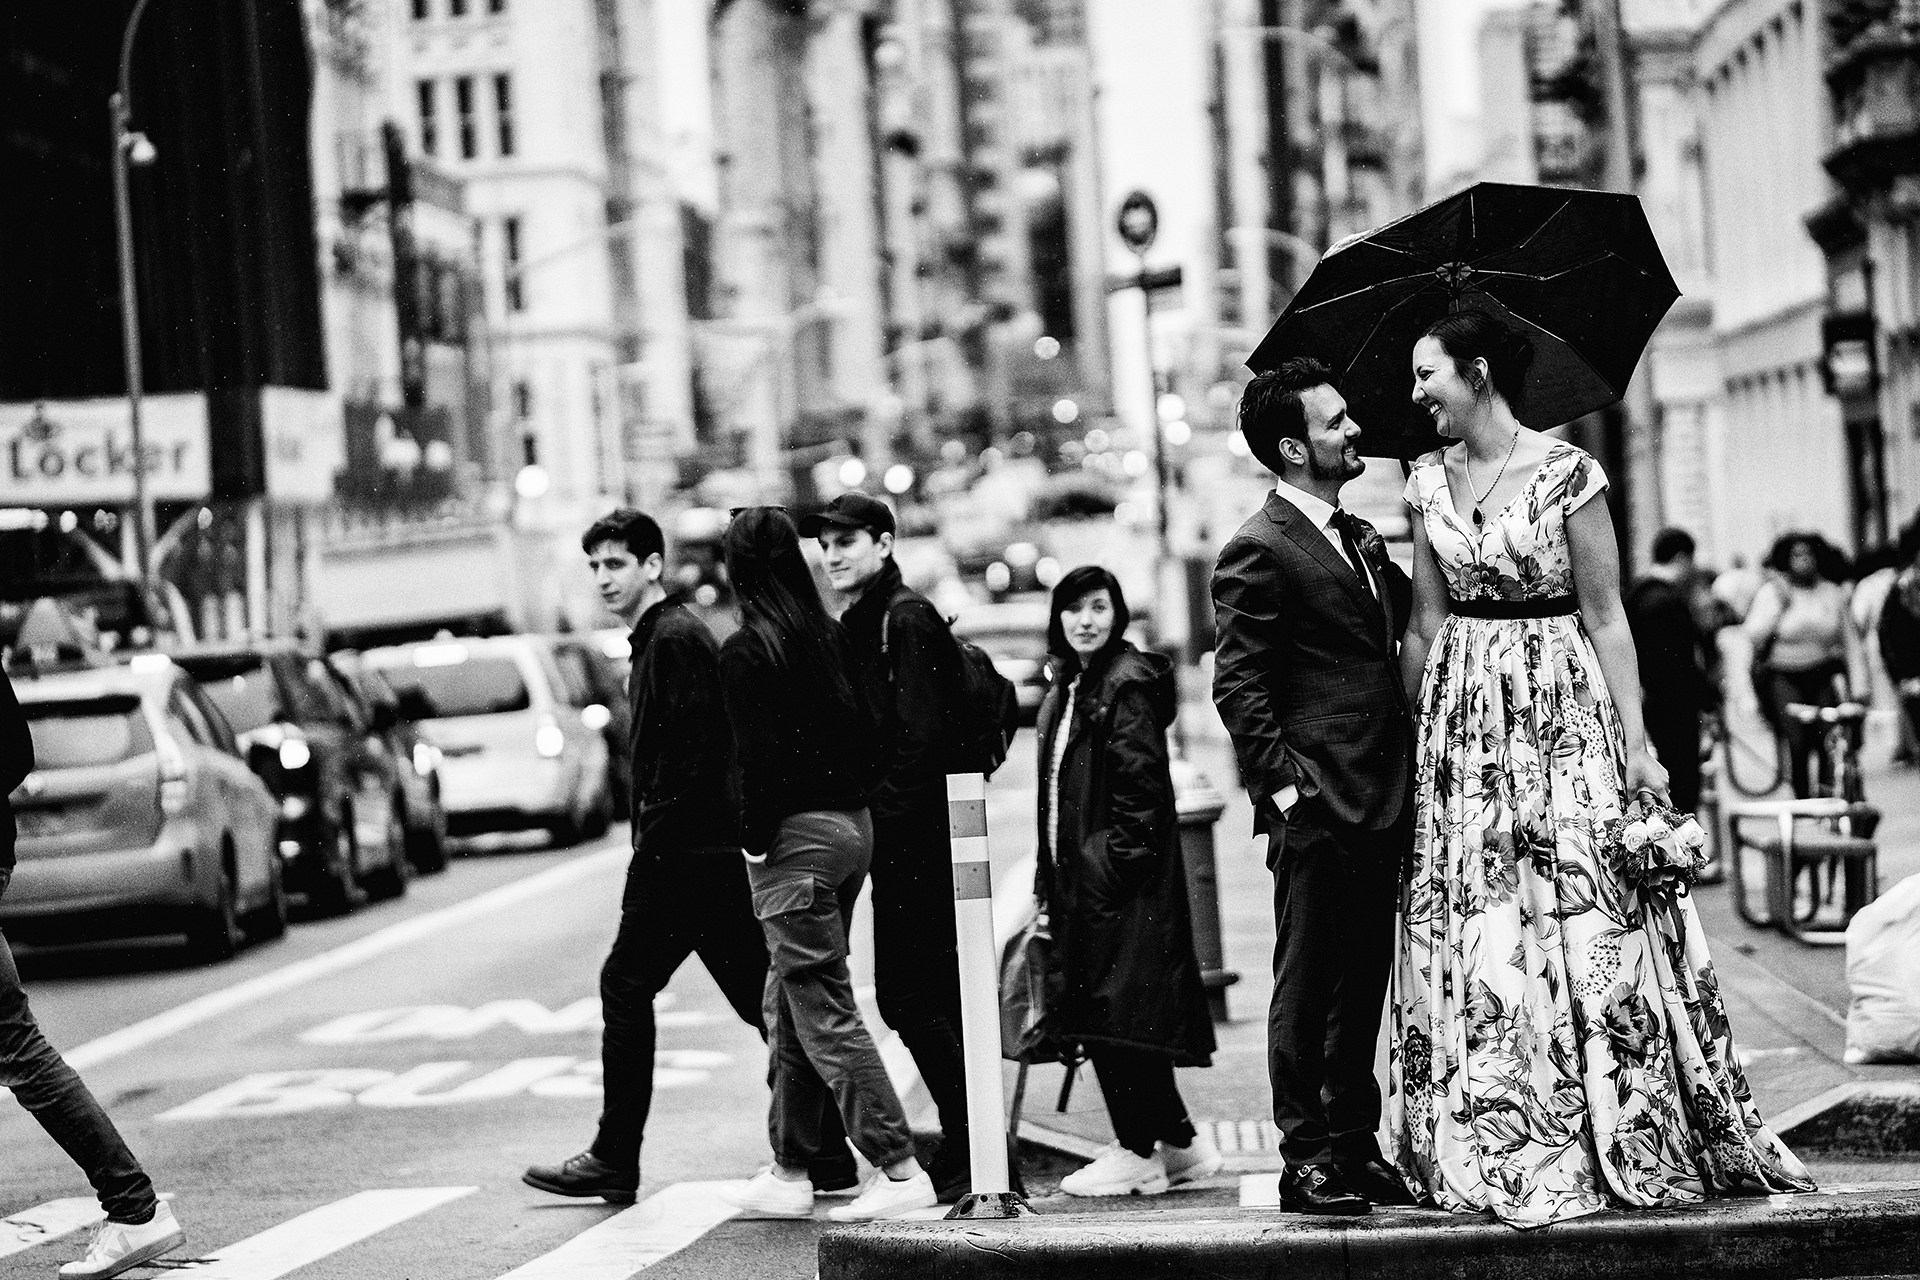 Elopement Wedding Photos from SoHo | The couple poses for a NYC street portrait